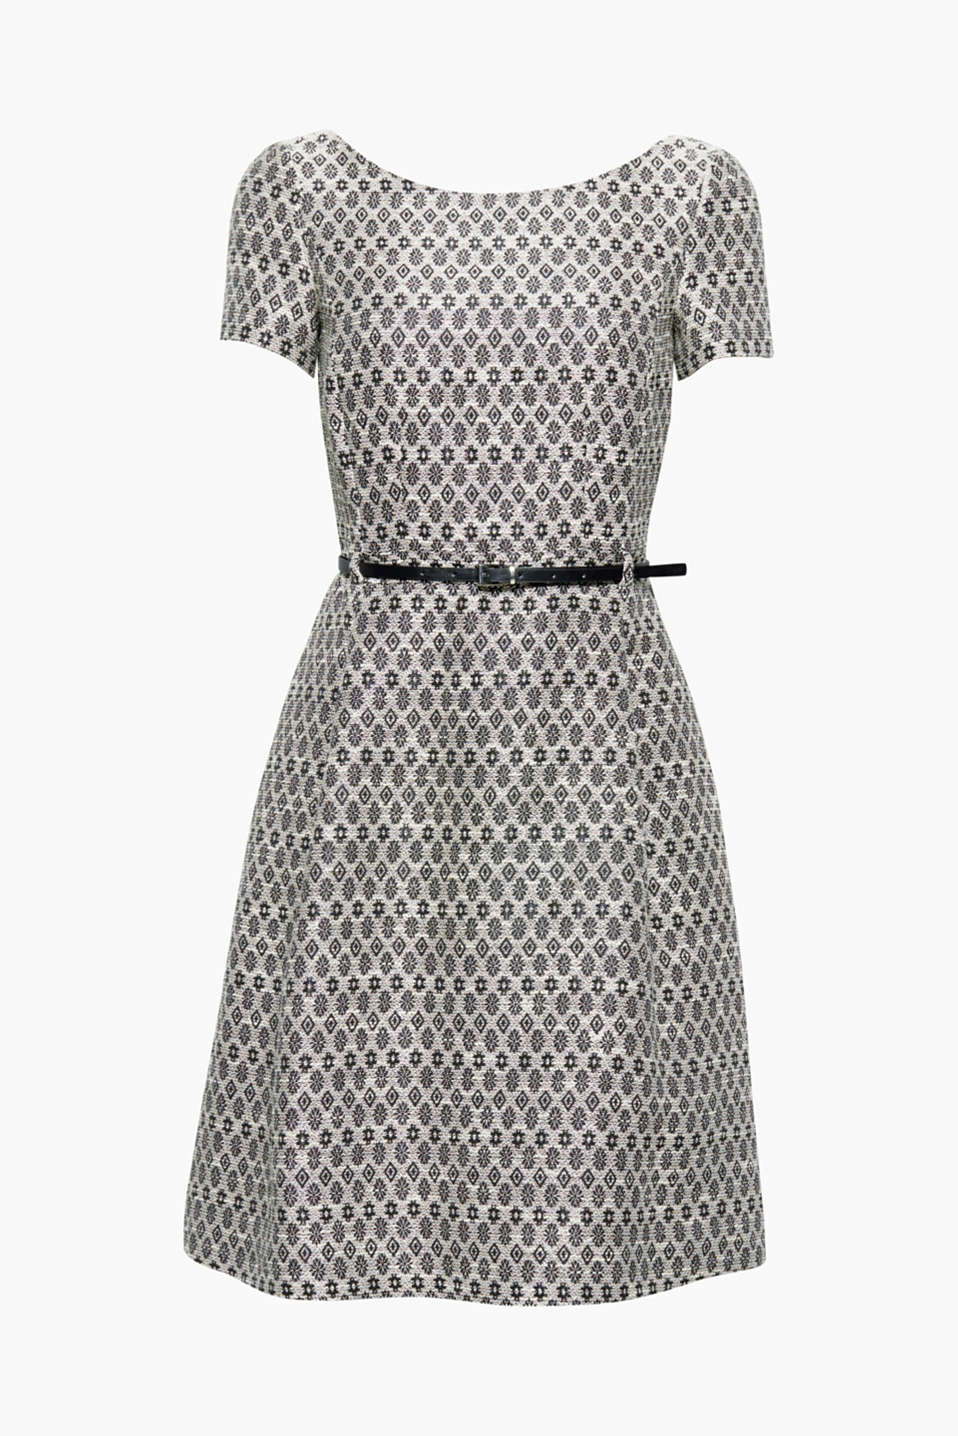 Patterns are always re-imagined as proven by this elegant jacquard dress with a narrow belt.